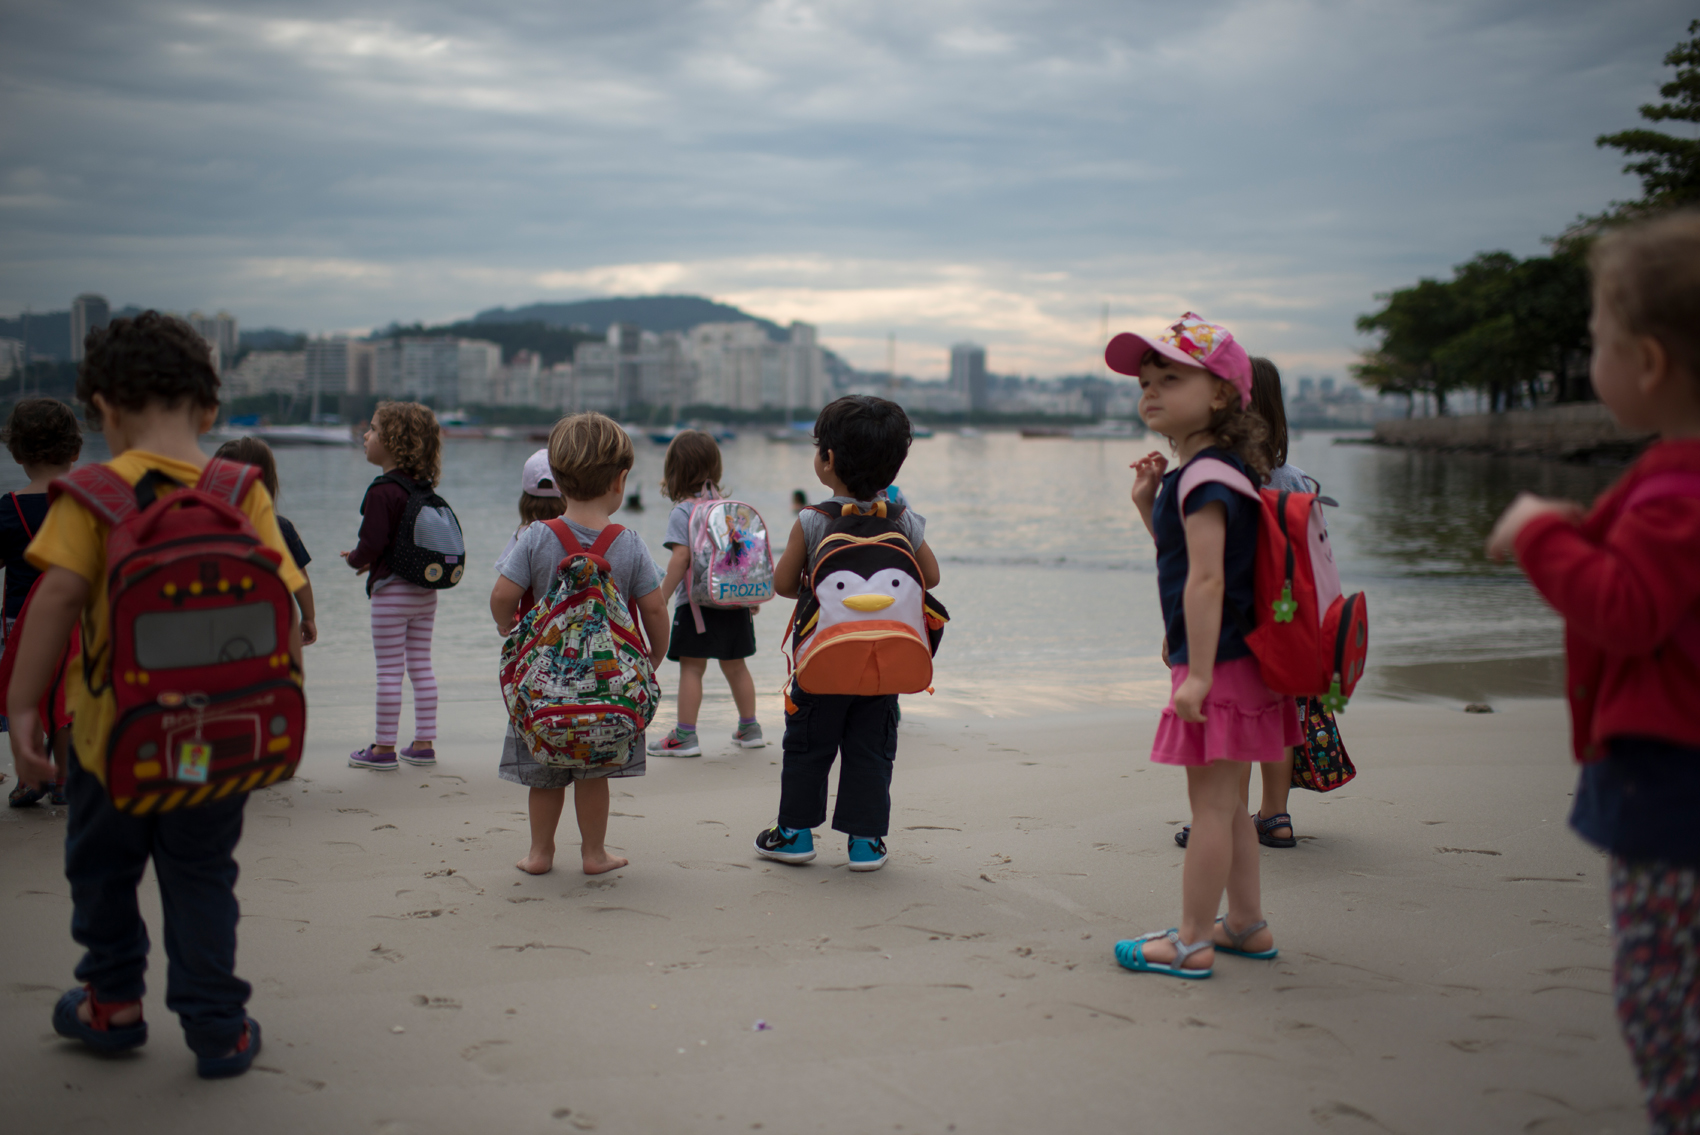 BG500 was originally founded to work on many levels of environmental education. Ed gives classes to children of all ages, developing their sensibility to marine live. Many times, play activities awaken curiosity and encourage children to understand and get closer to the environmental cause, since early age.